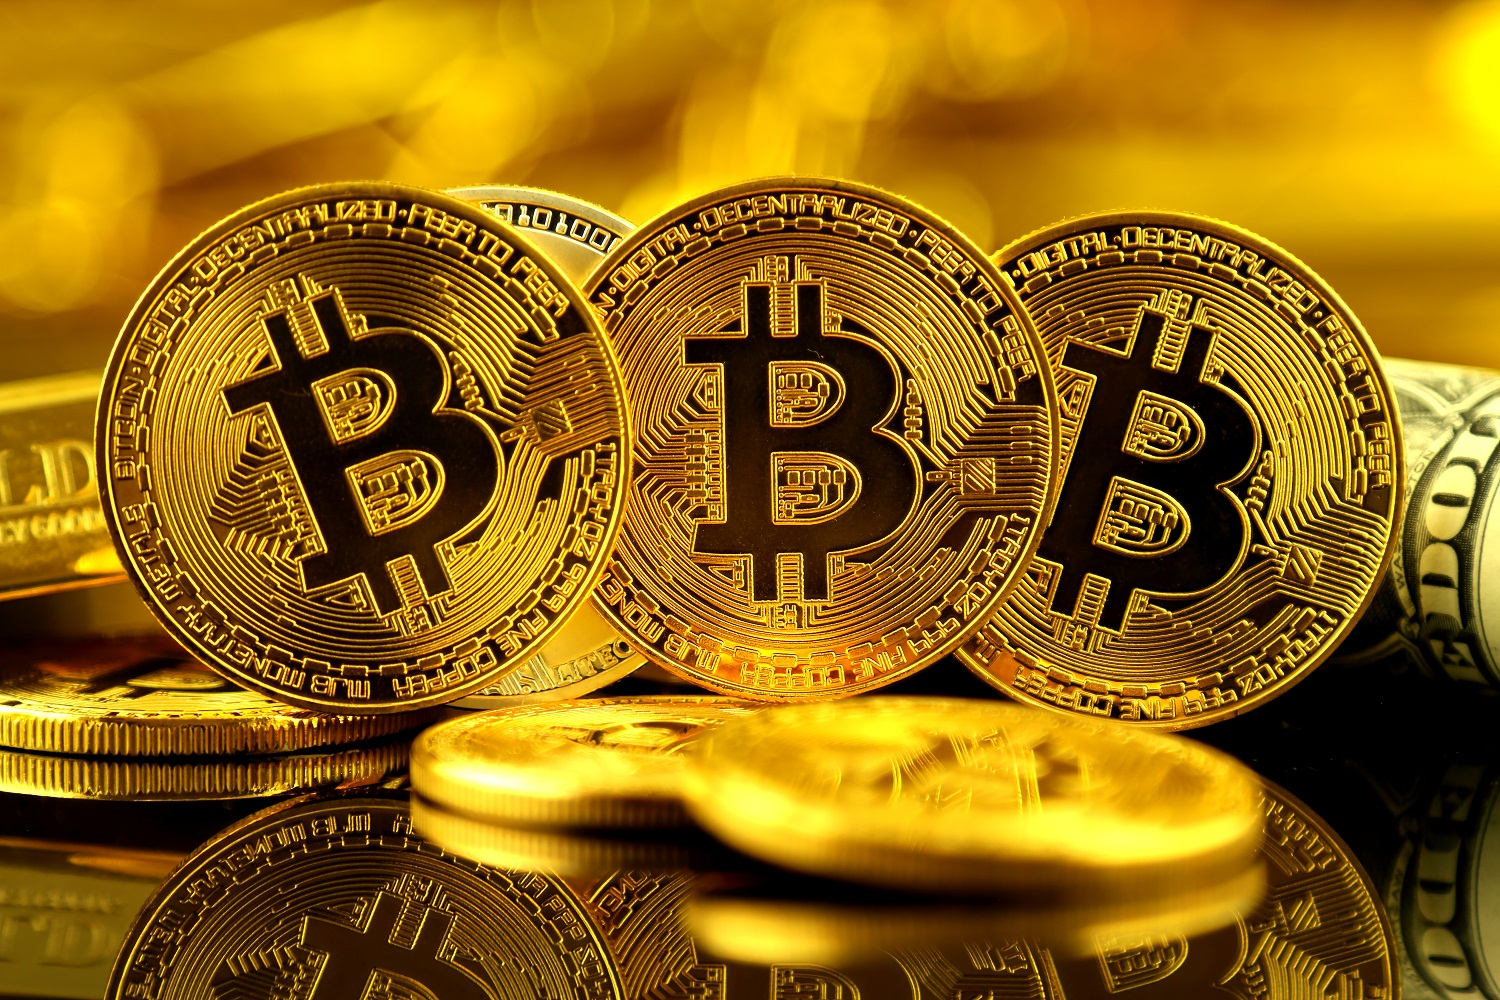 Bank Of Boston Federal Reserve's President Is Shocked At The Bitcoin Fall